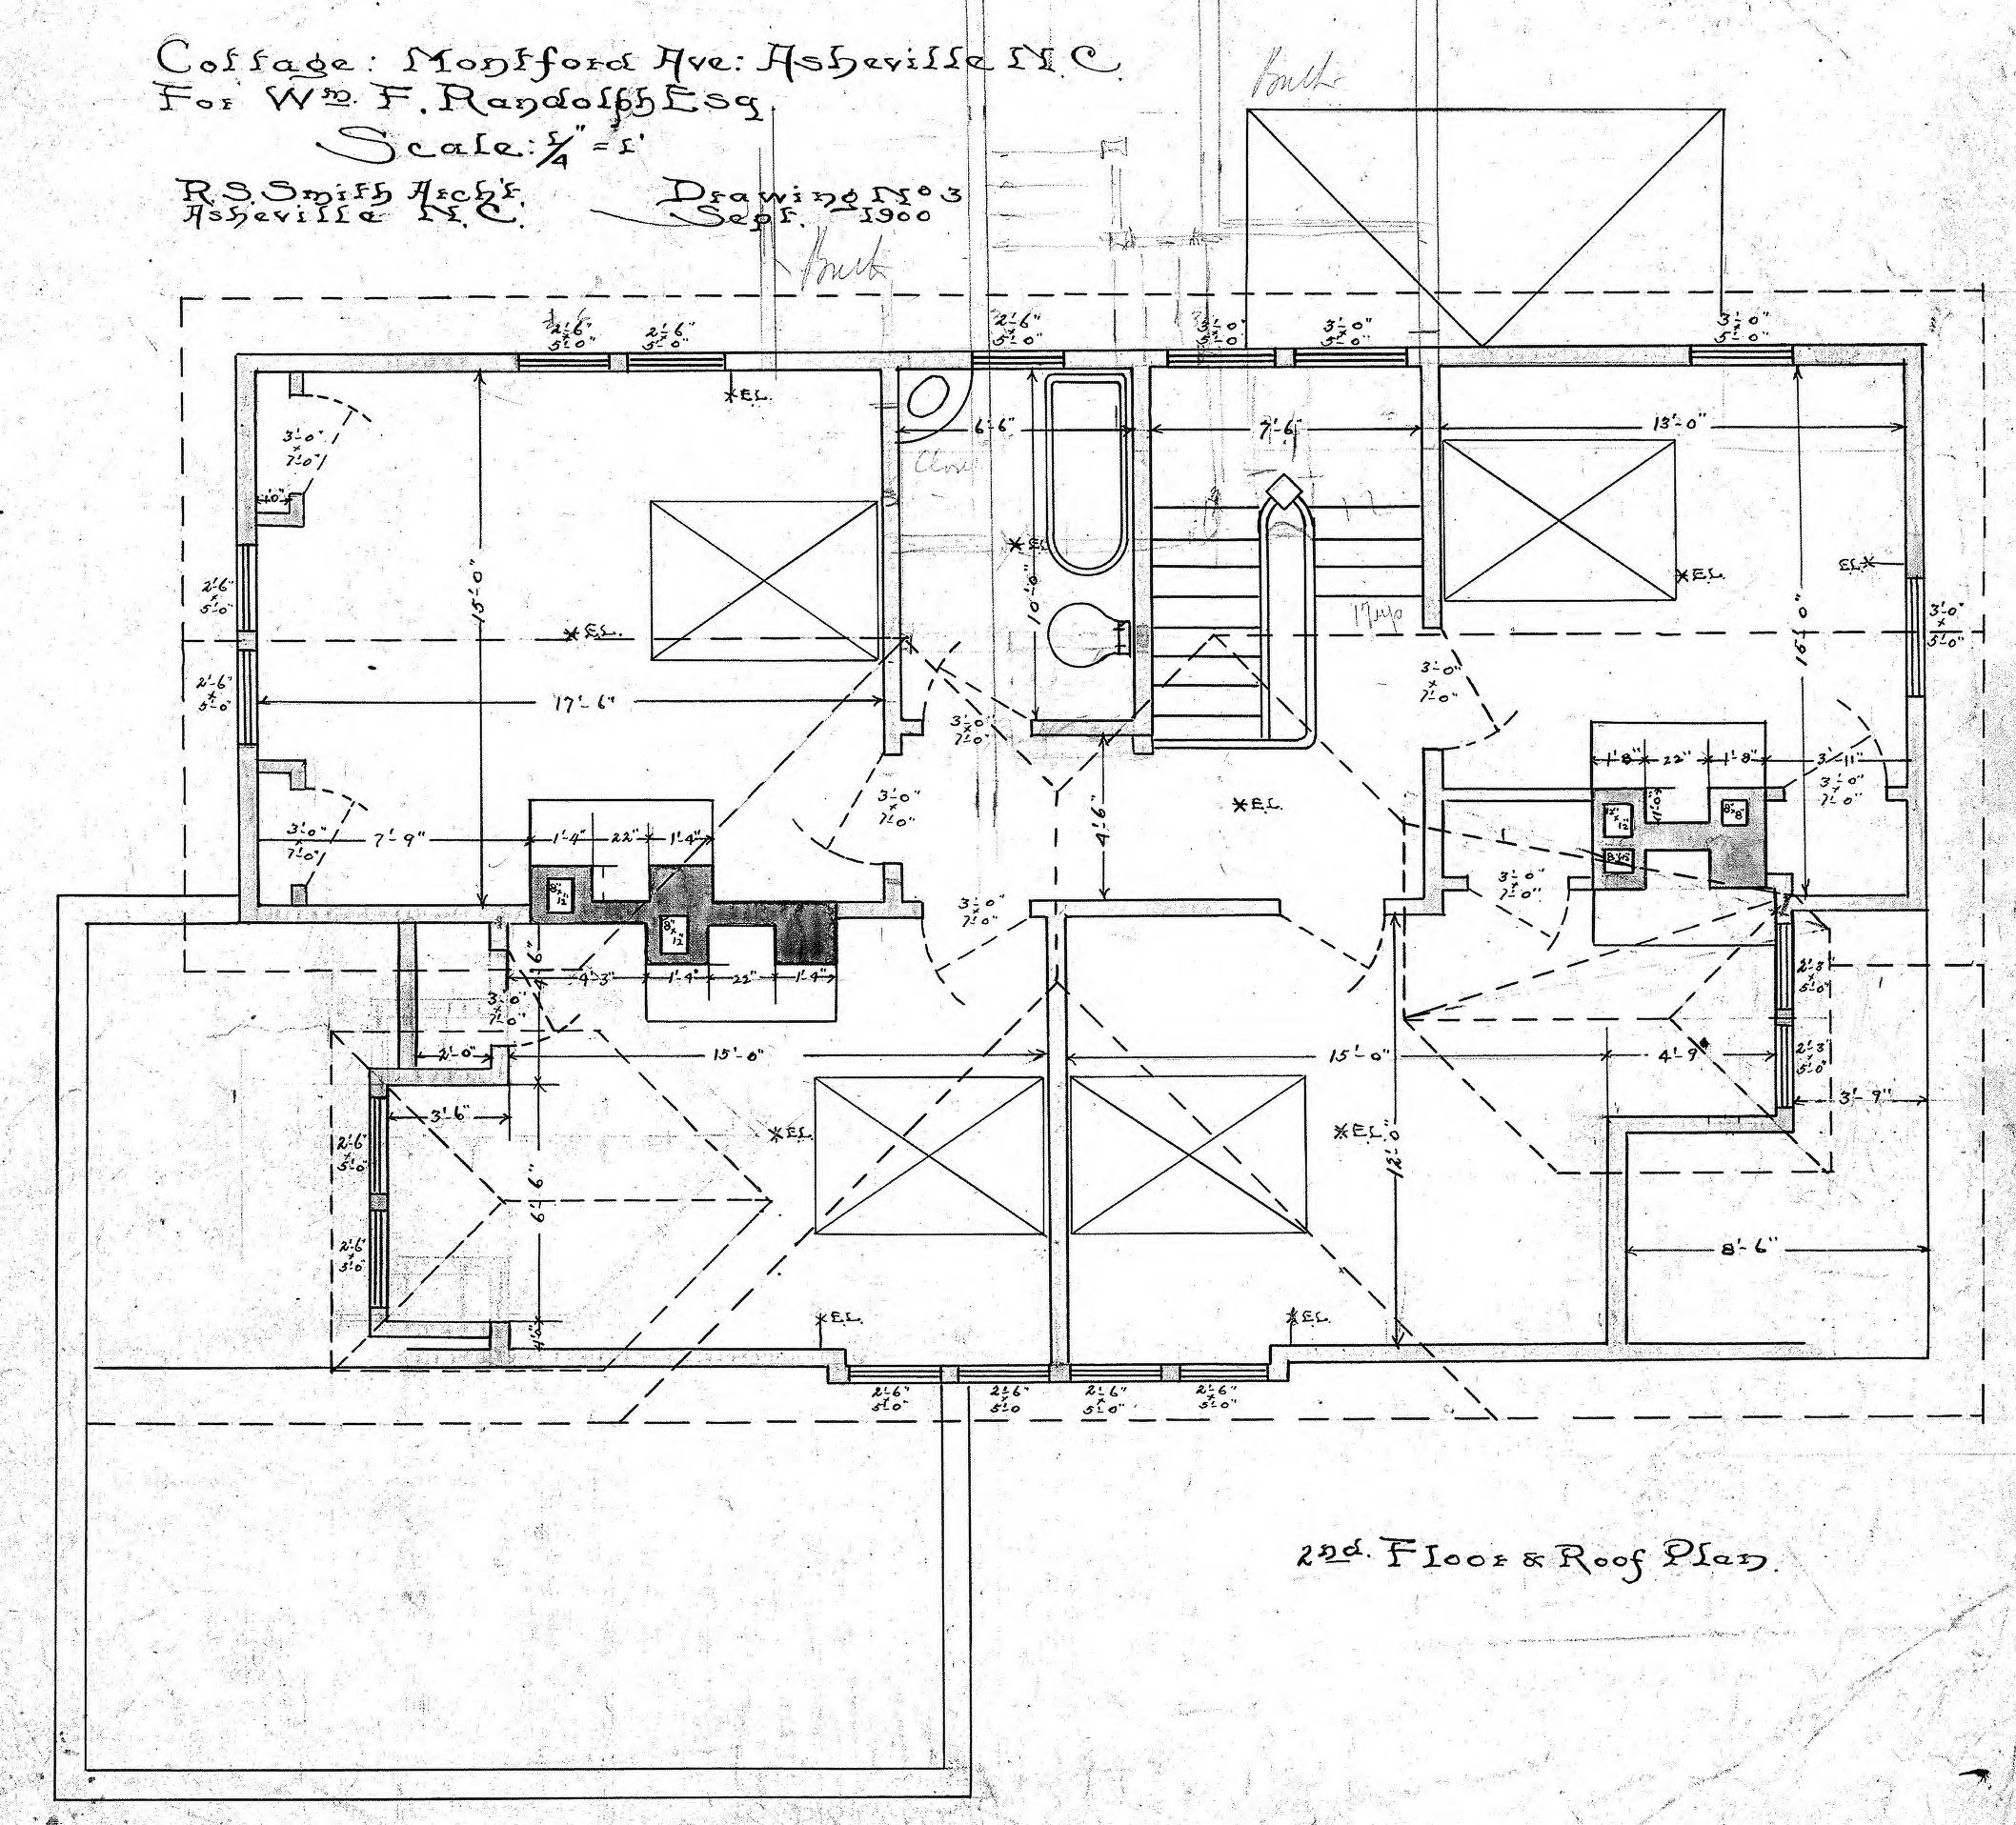 Cottage montford ave wm f randolph 2nd floor roof for Roof plan drawing